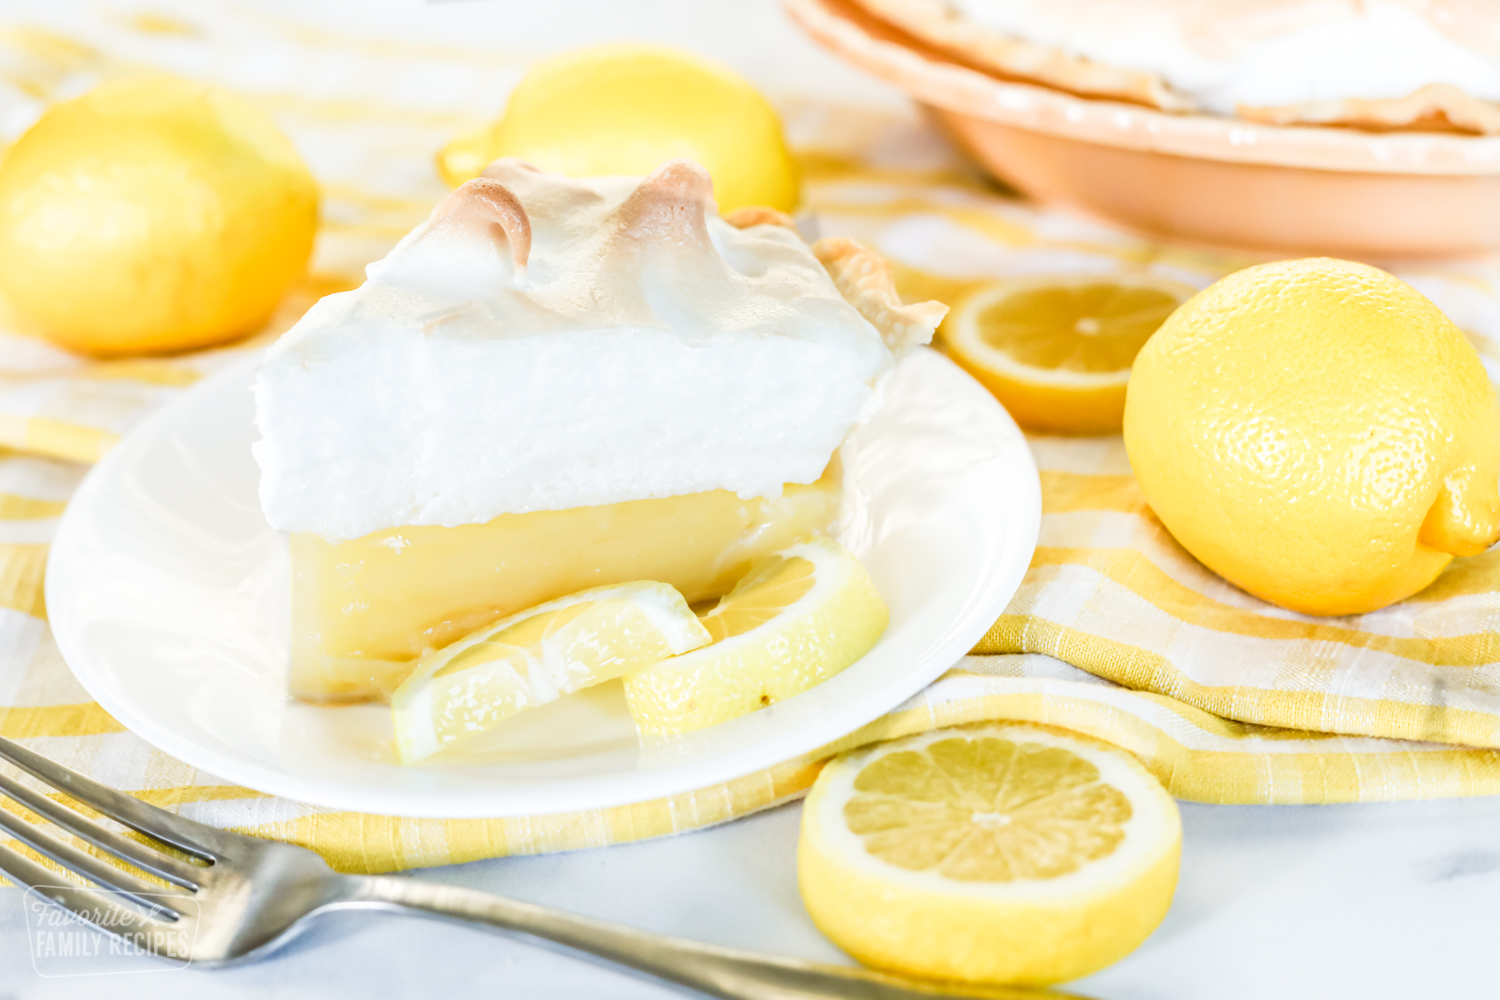 A slice of lemon meringue pie on a plate garnished with lemons. The plate is sitting on a yellow cloth napkin next to a fork and lemons.